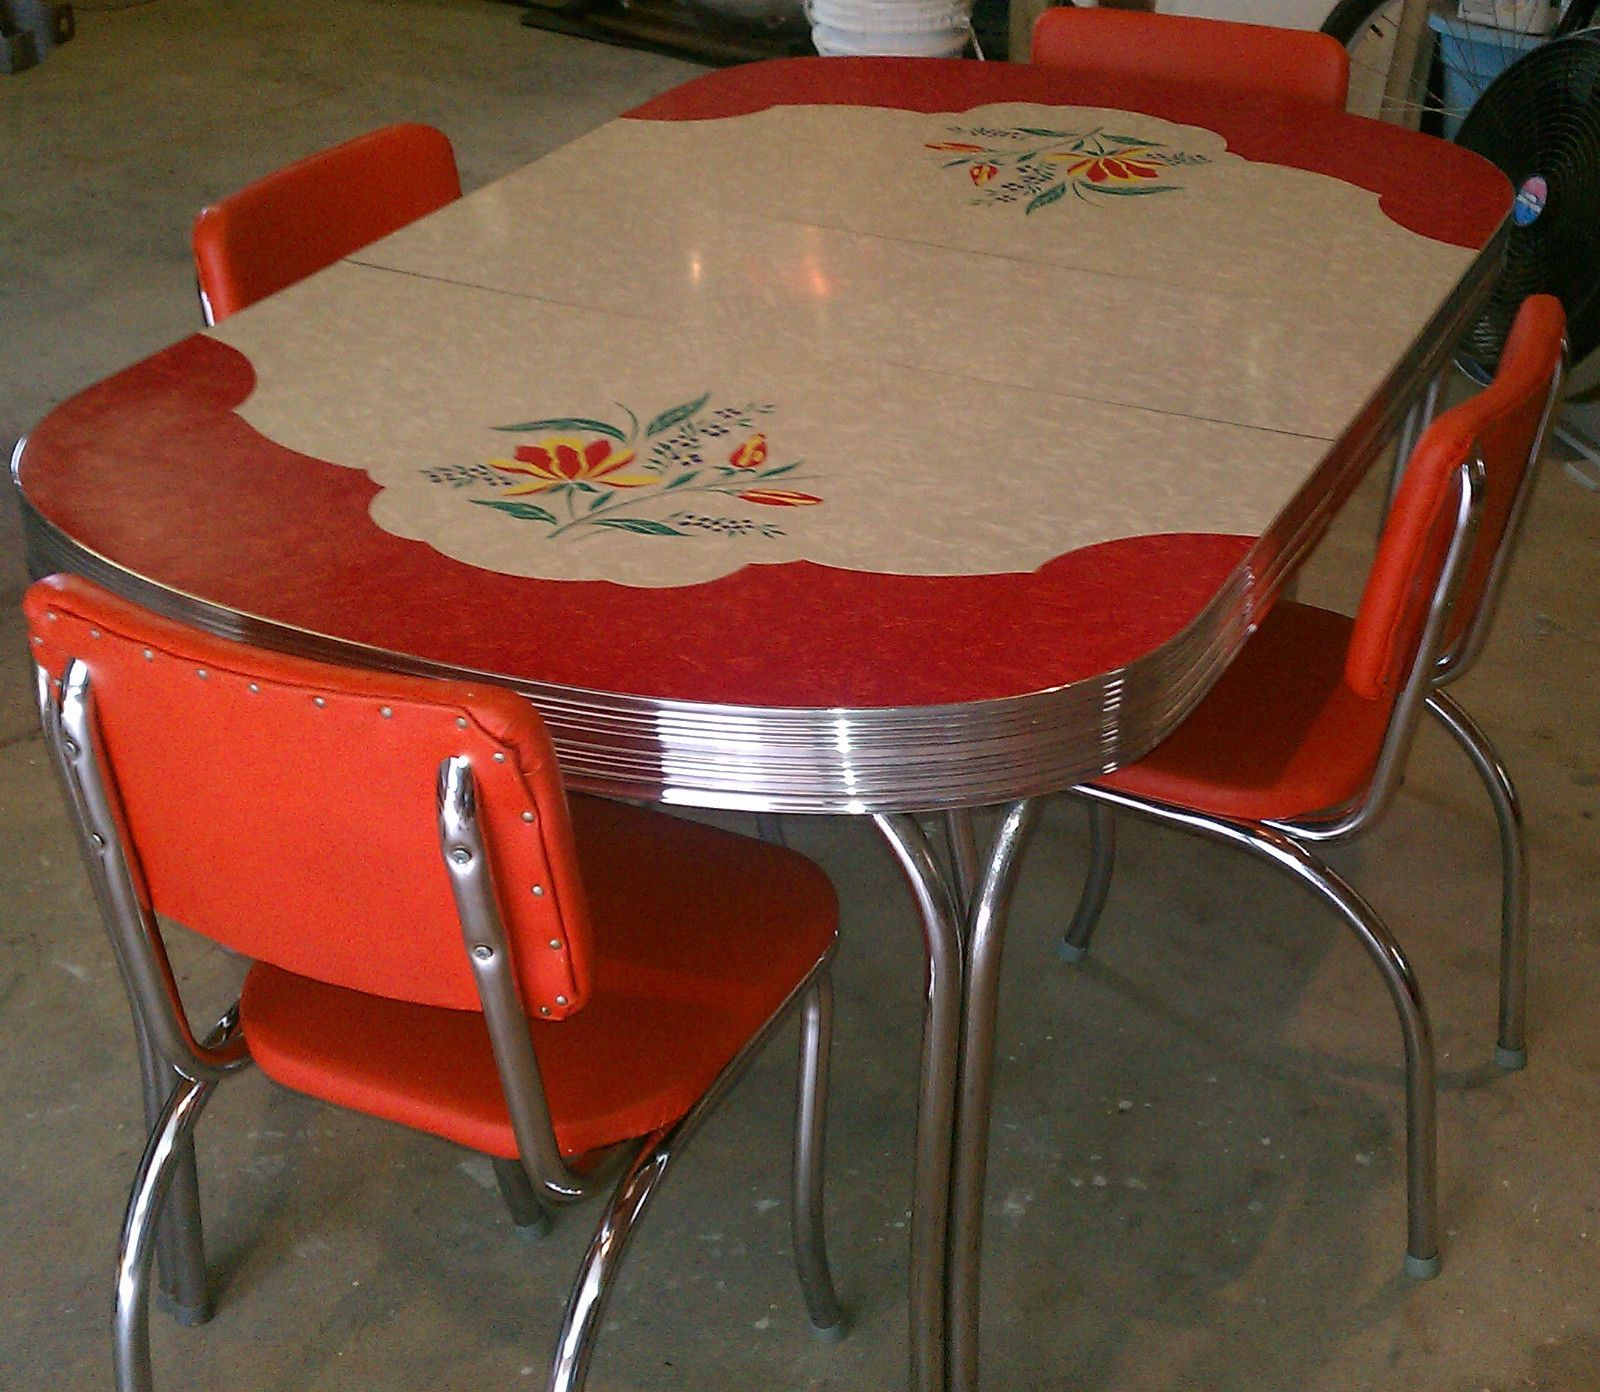 details about vintage kitchen formica table 4 chairs chrome orange red whitegray retro eames - Formica Kitchen Table